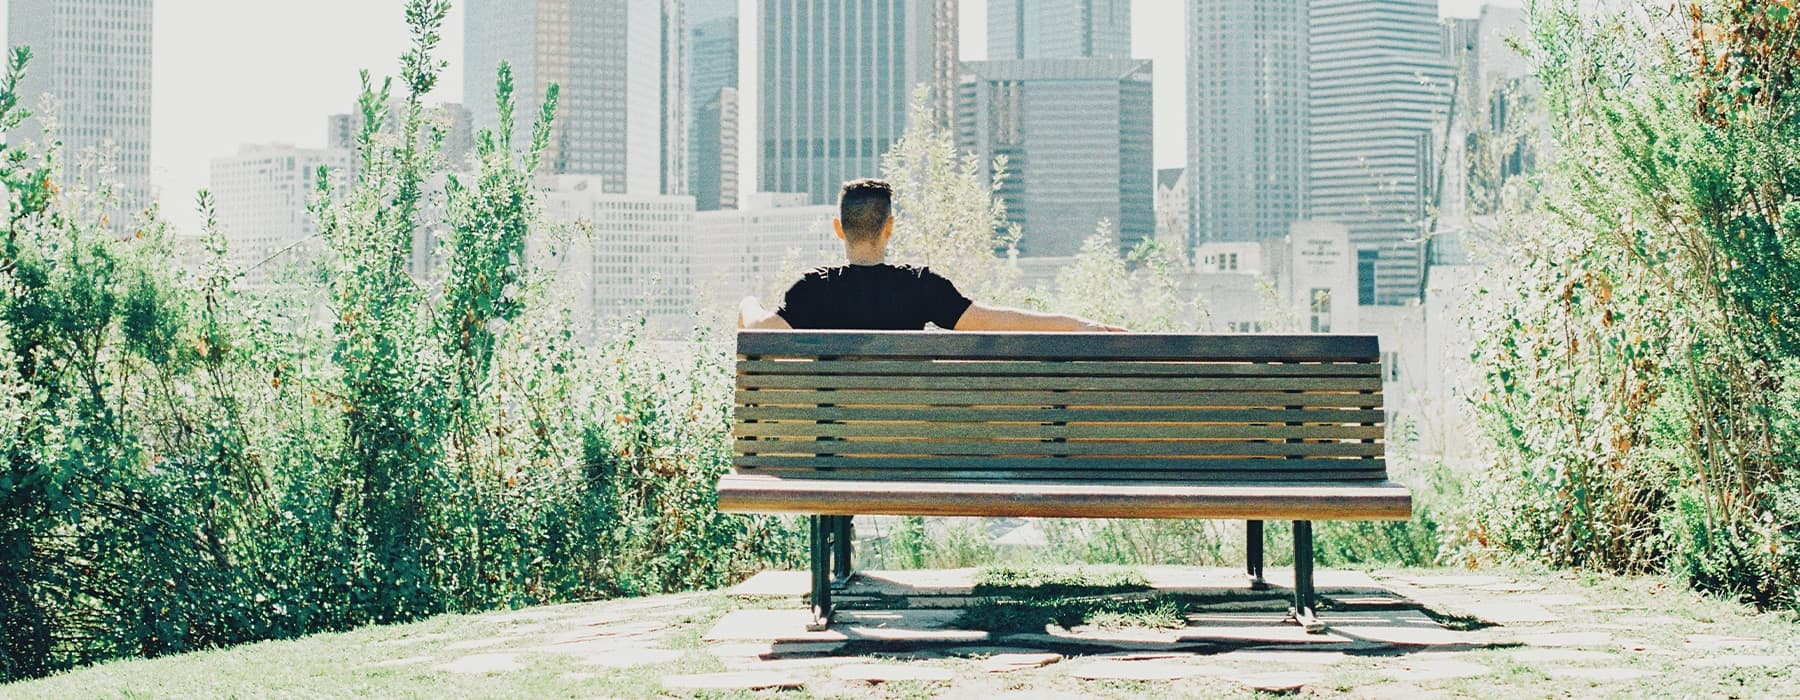 lifestyle image of a person sitting on a bench with city views